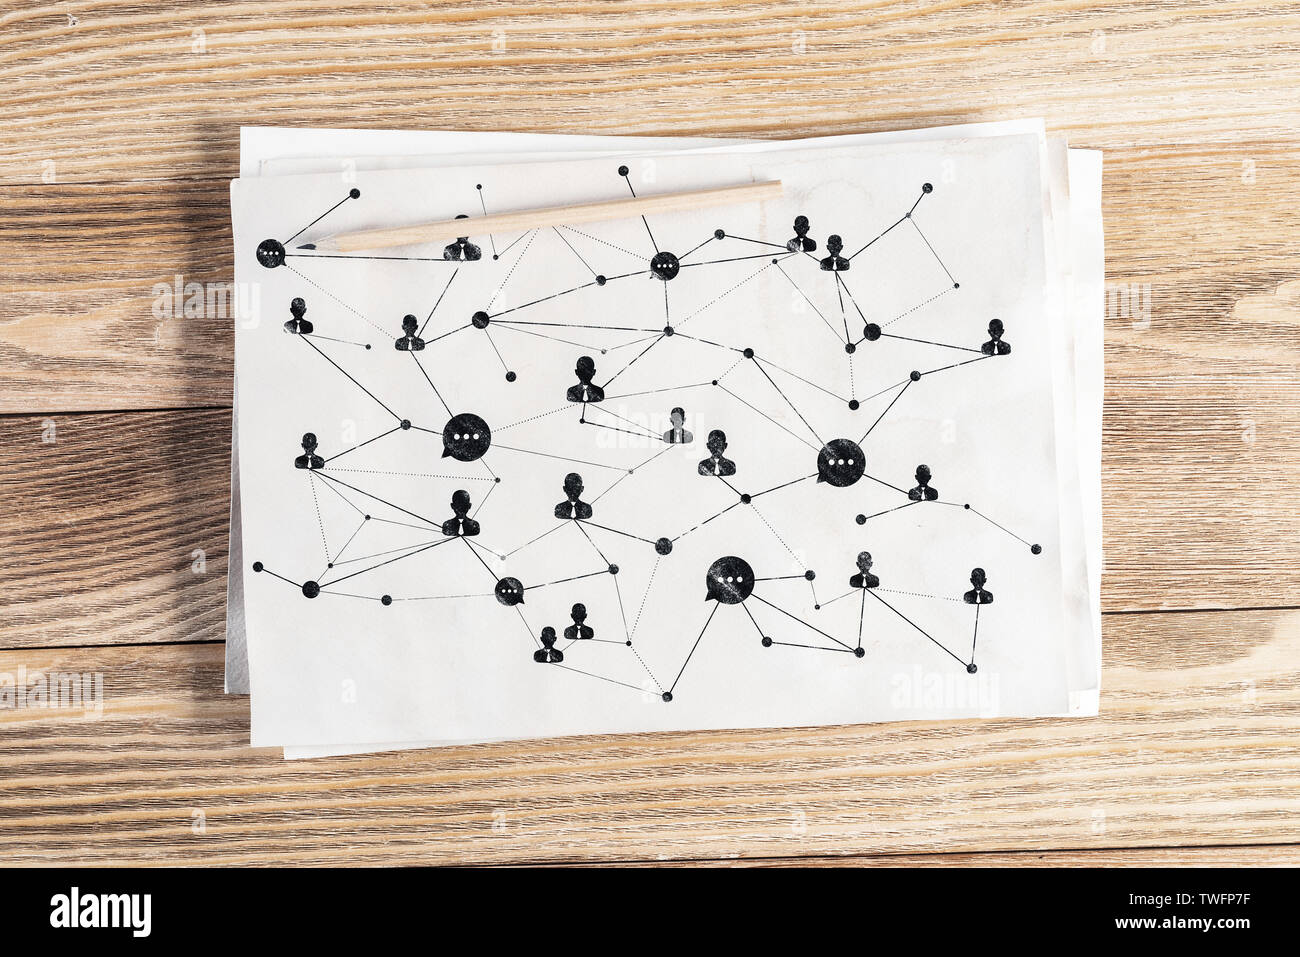 Social network structure pencil hand drawn with human icons and intersections. Business communication sketch on wooden surface. Top view of workplace - Stock Image